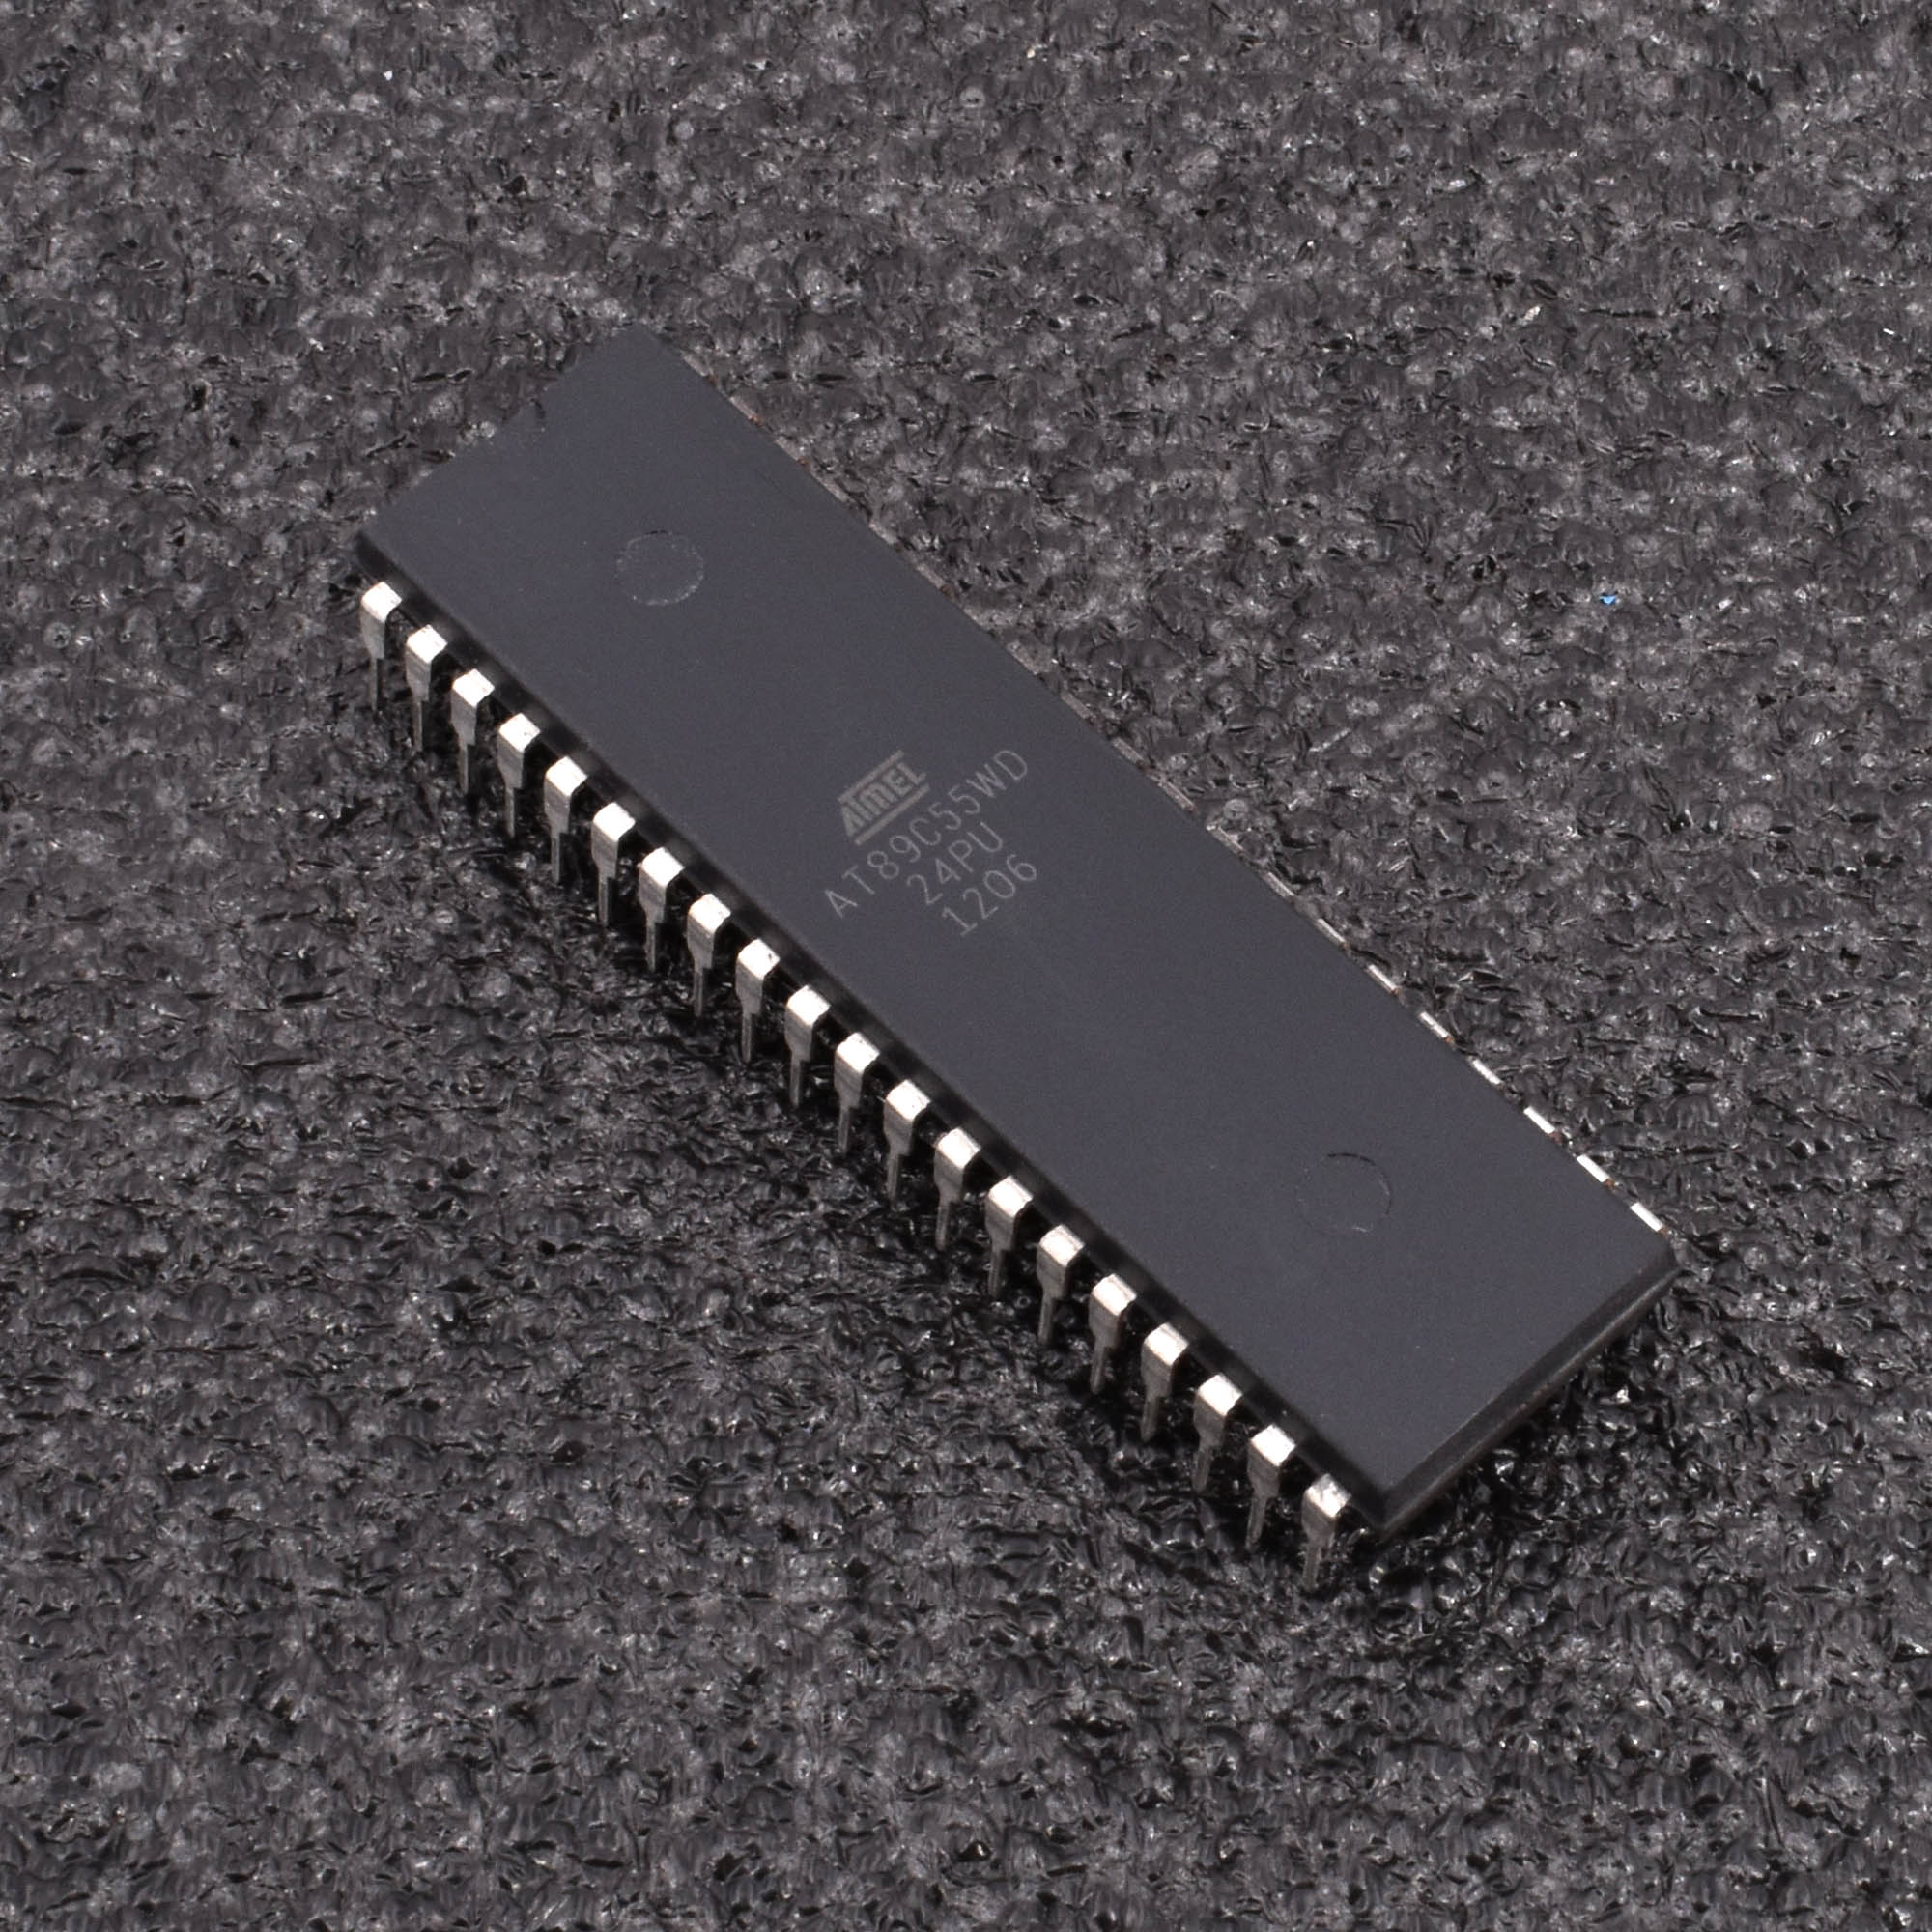 50Pcs Switch Module 2.54MM Pitch 8-Bit 8-Positions Way Slide Type Red Dip New nv